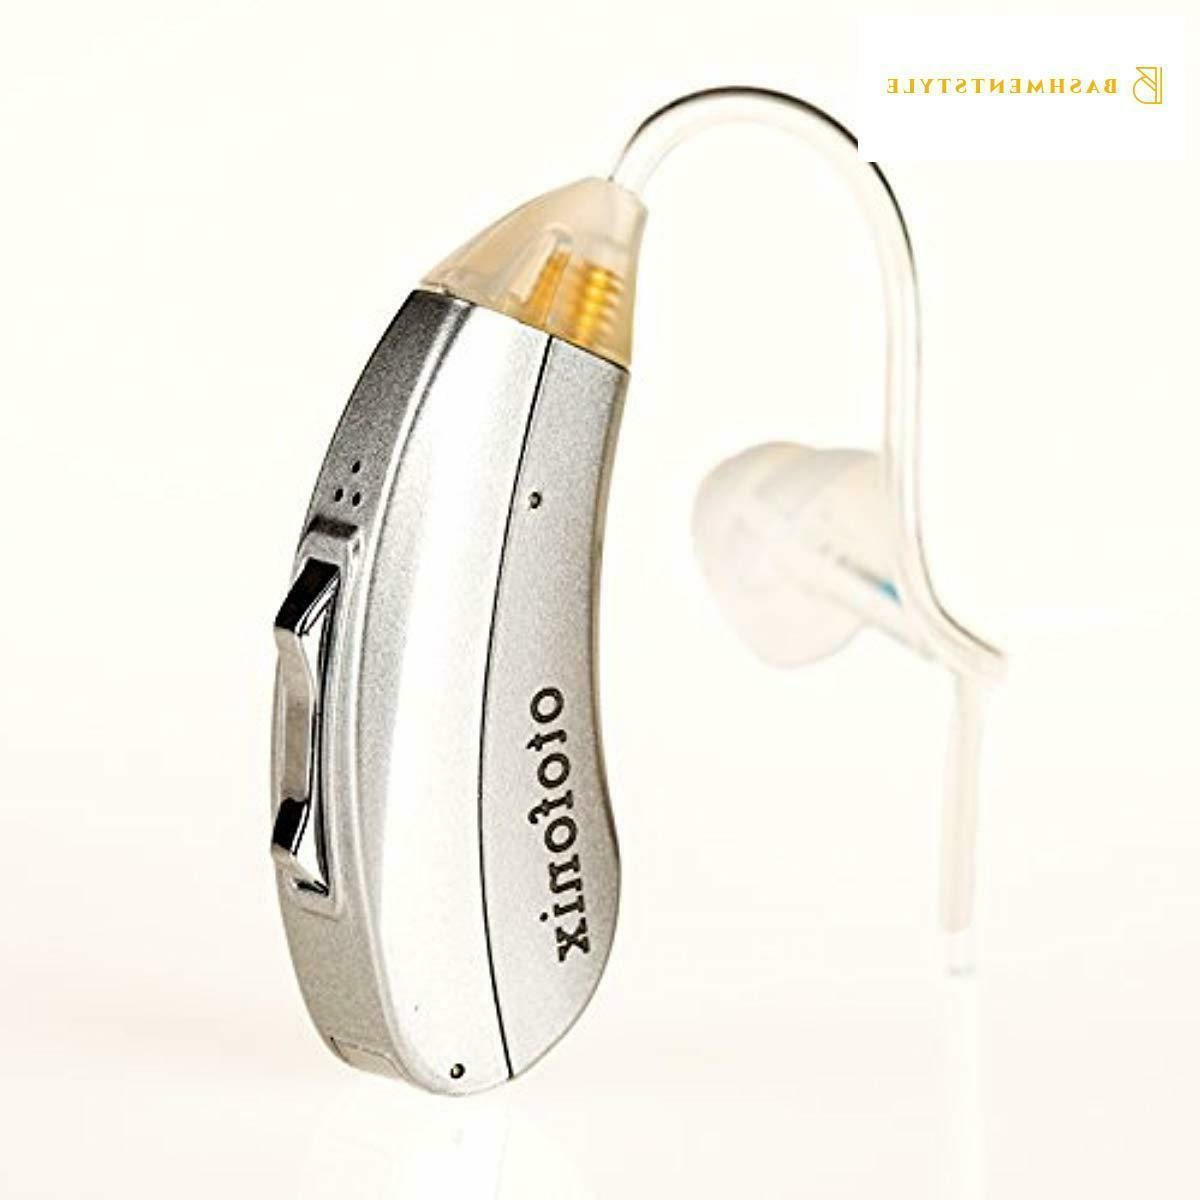 Otofonix Amplifier to Assist Hearing for Seniors (